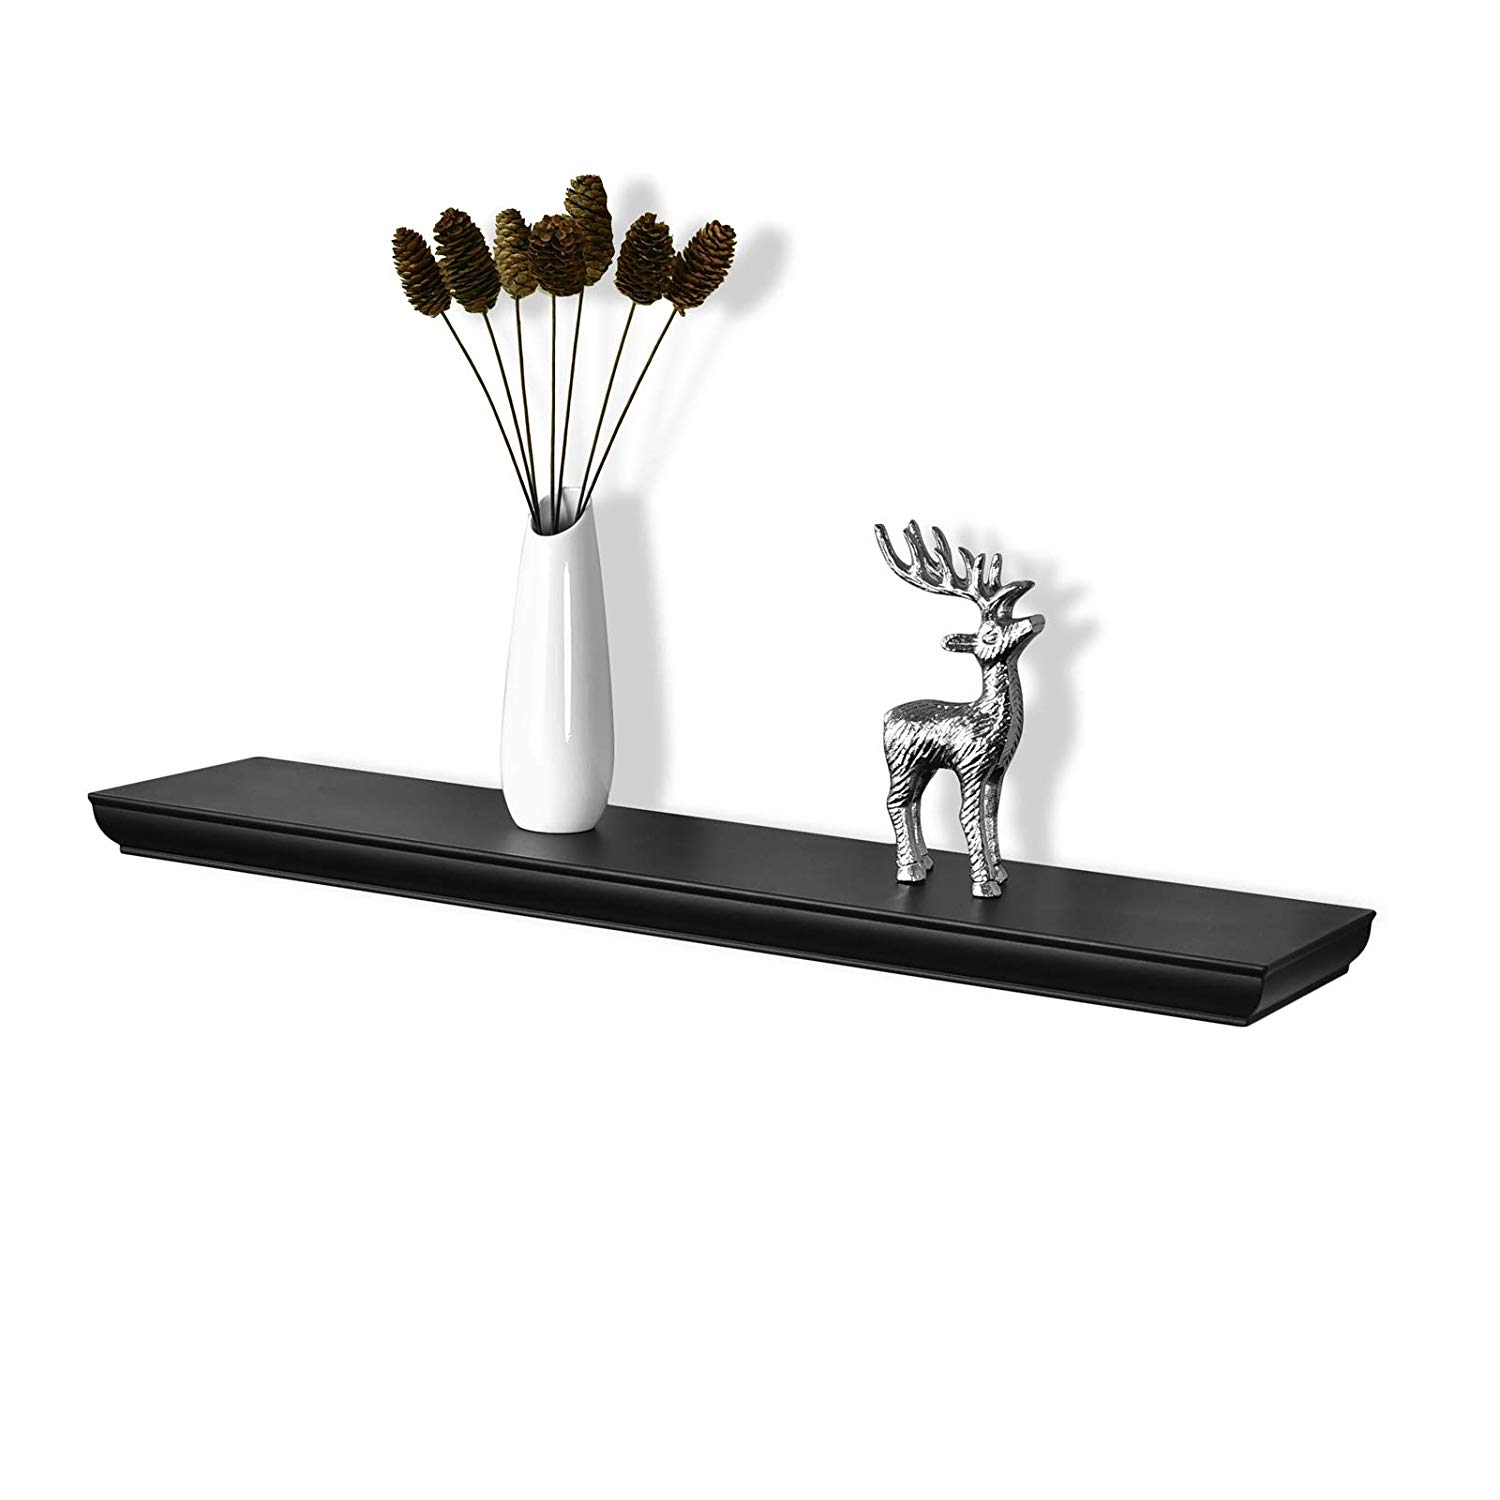 welland wilson floating shelves black wall shelf with drawer barn shaped triangle hinged desk ikea thick screws for stick mirrors inch media cabinet high cubes rectangular wrought